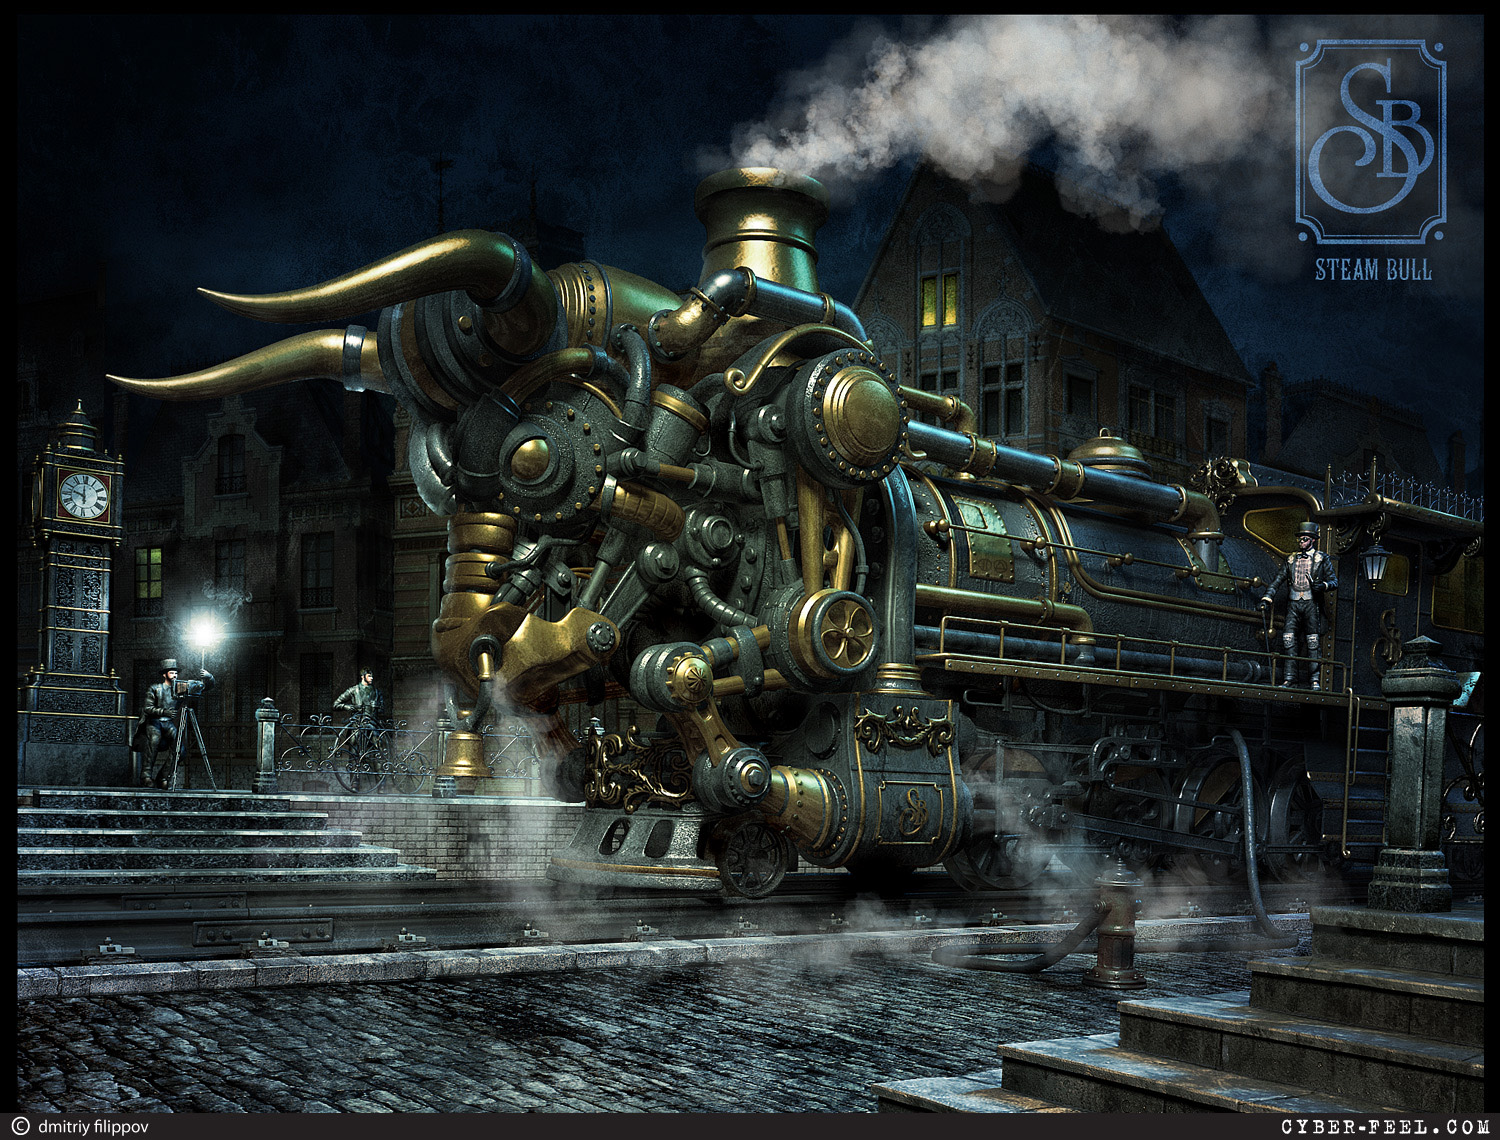 02-Steam-Bull-Taurus-Dmitry-Filippov-Steampunk-Digital-Art-with-the-Zodiac-www-designstack-co